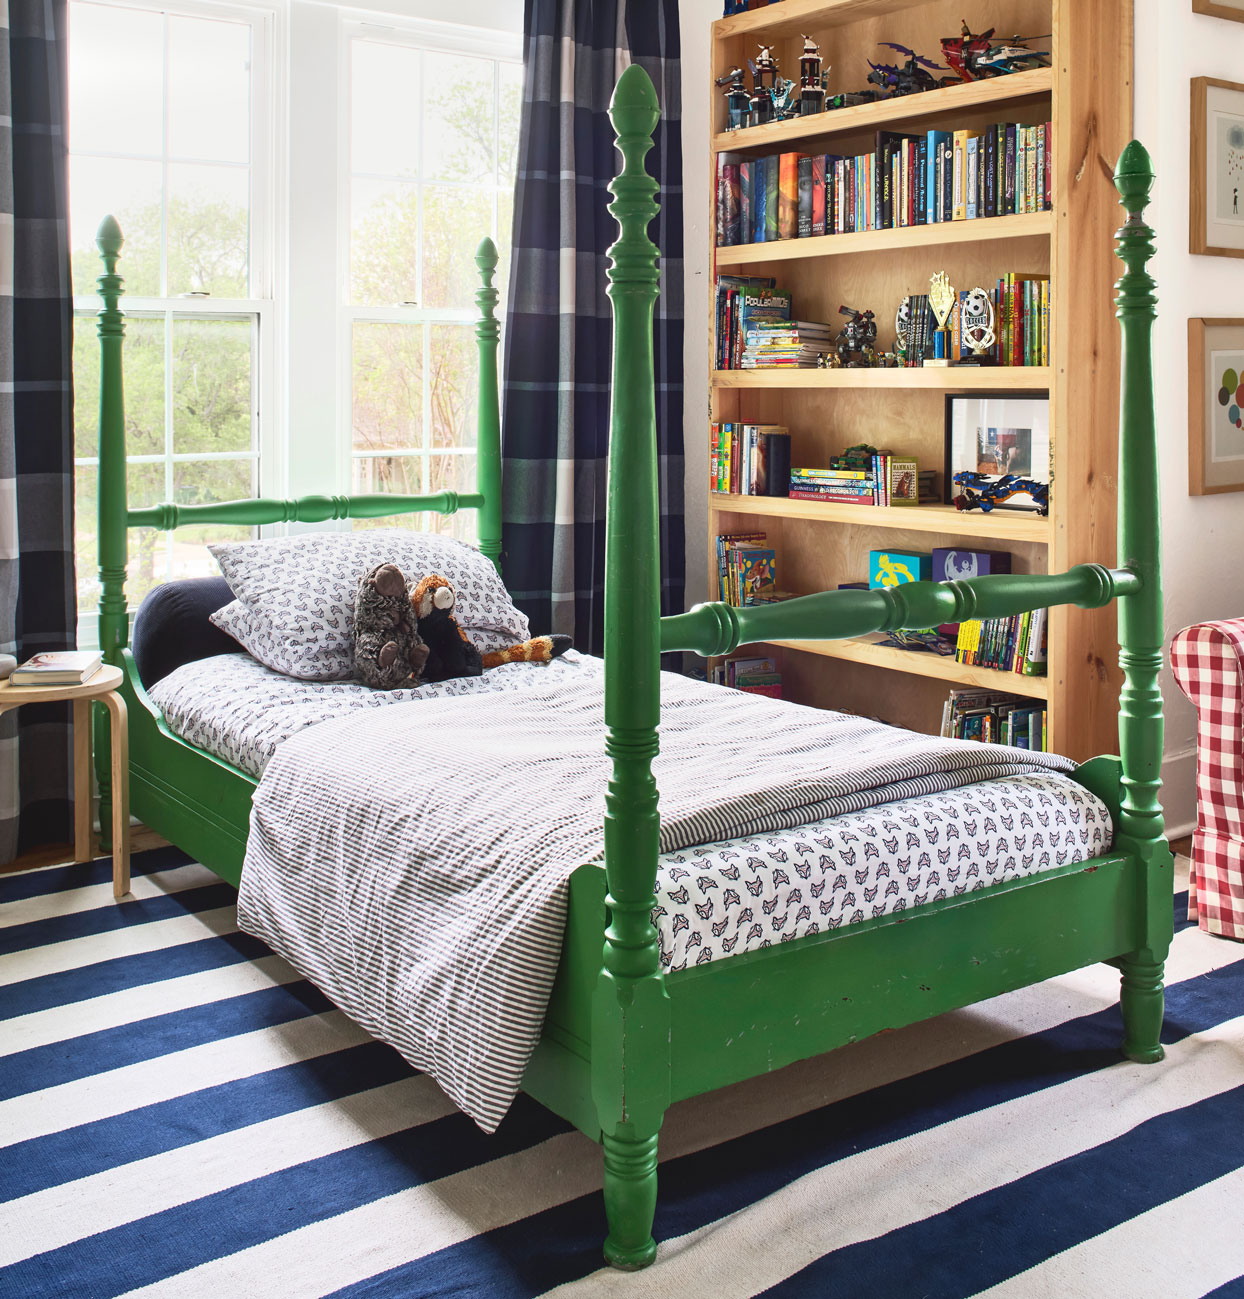 blue and white stripes and plaid in Elliot's bedroom